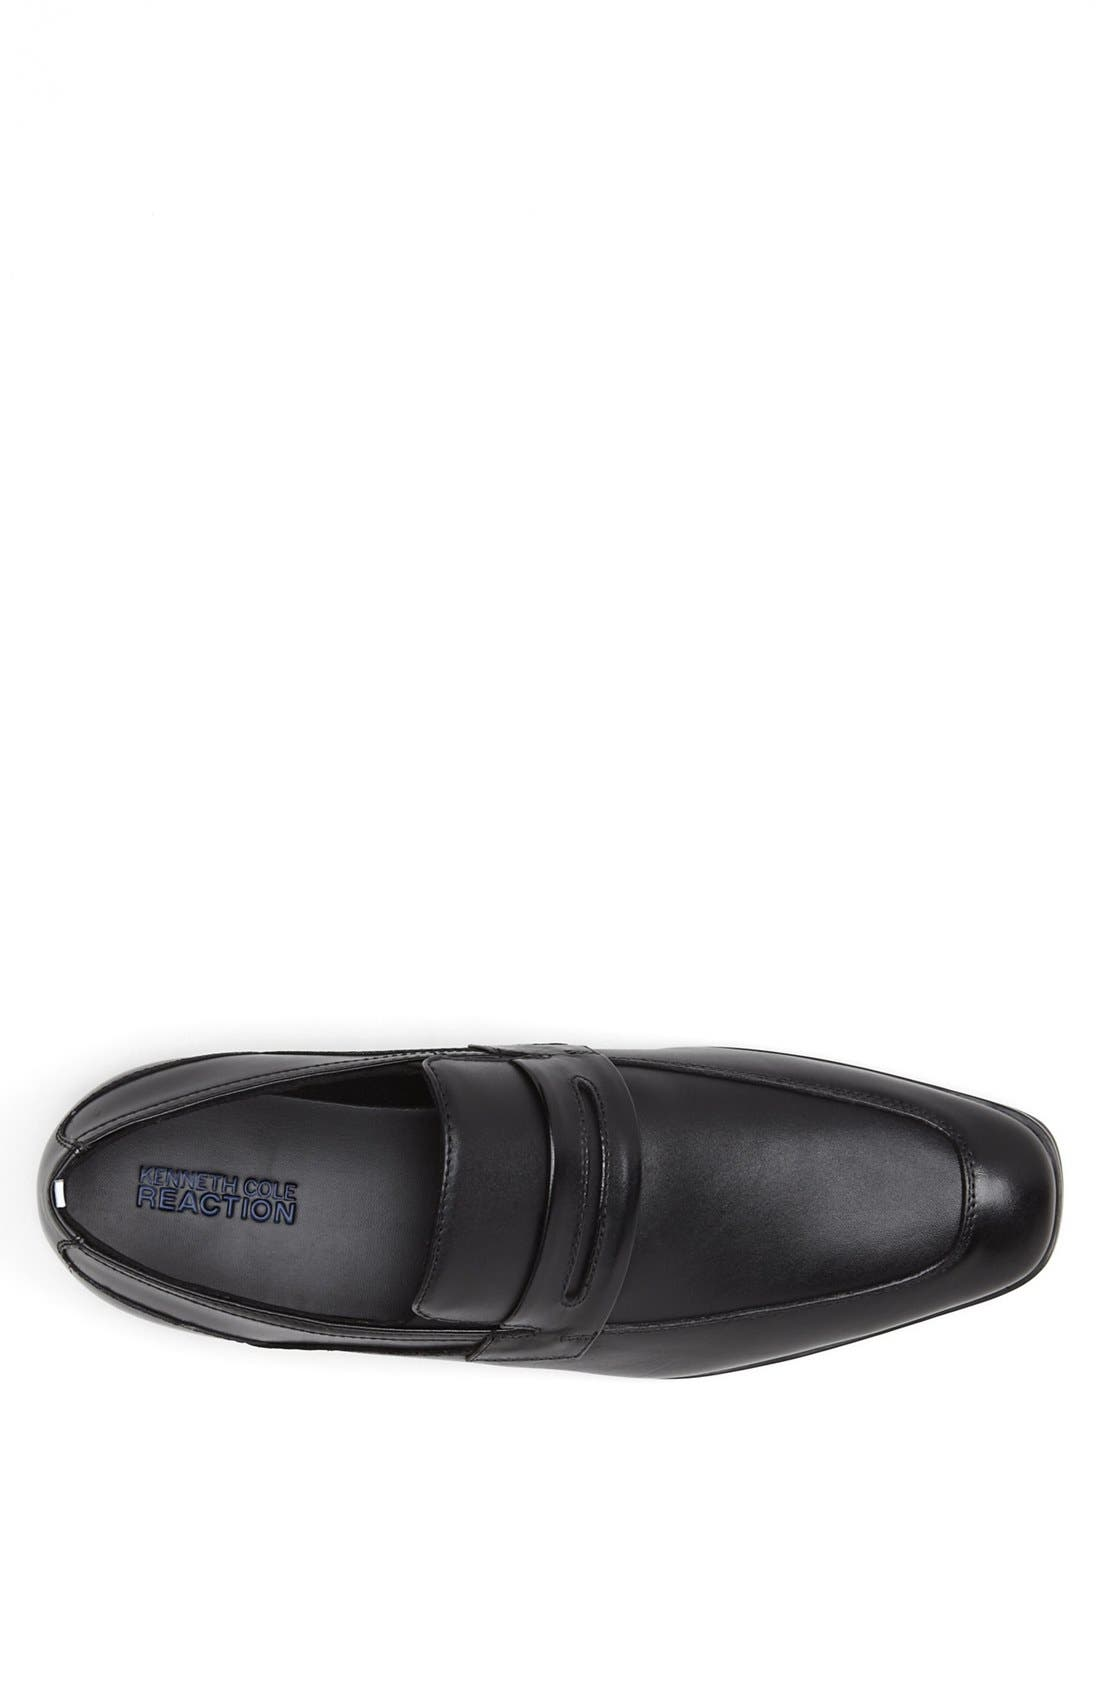 Alternate Image 3  - Kenneth Cole Reaction 'Ghost Town' Penny Loafer